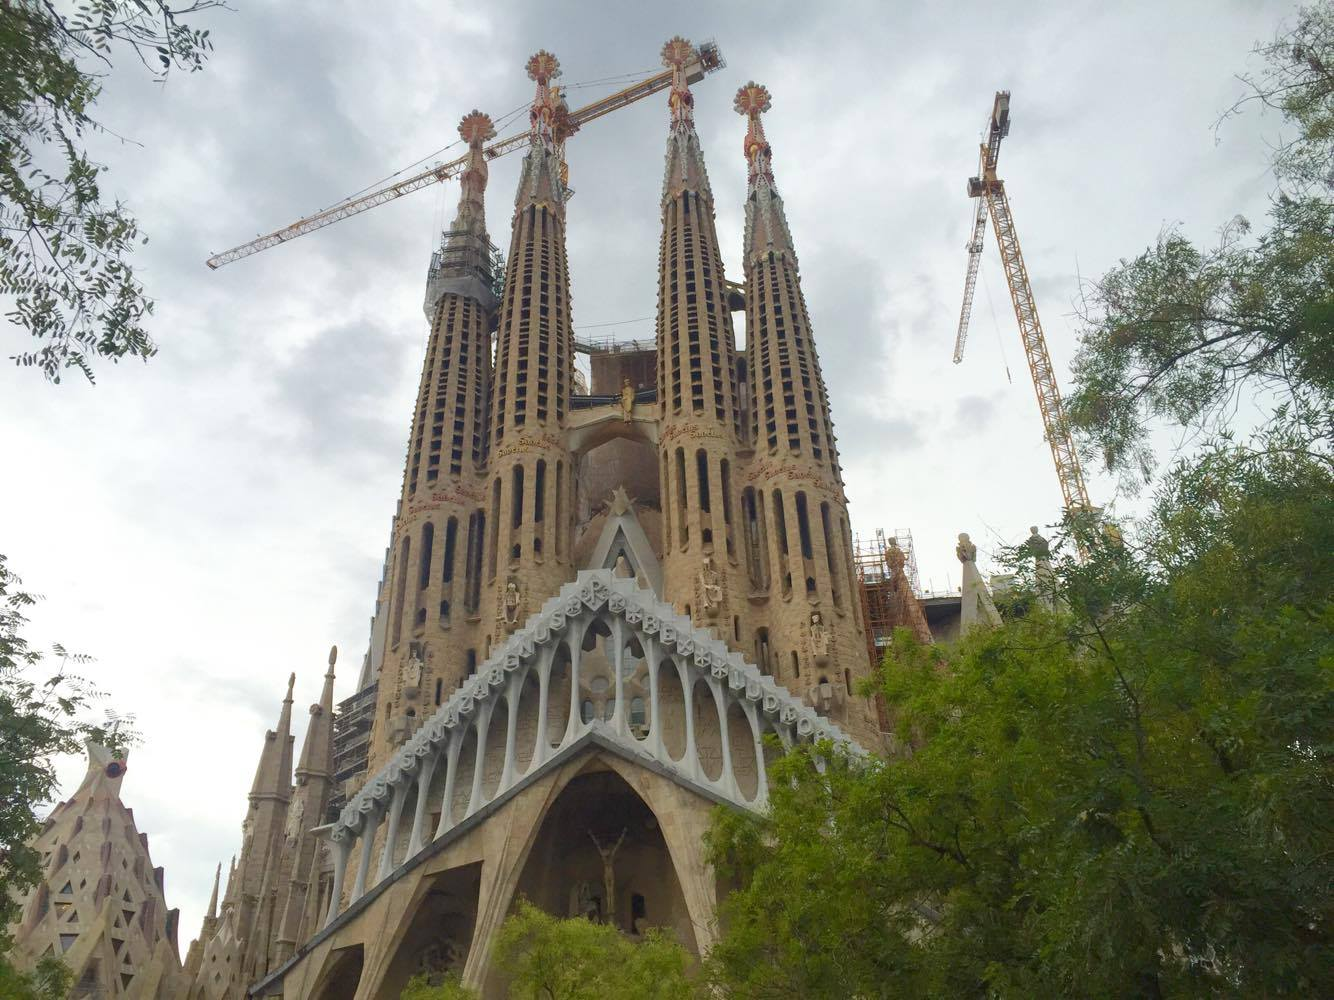 The Travel Gazette: COSA VEDERE E DOVE DORMIRE A BARCELLONA